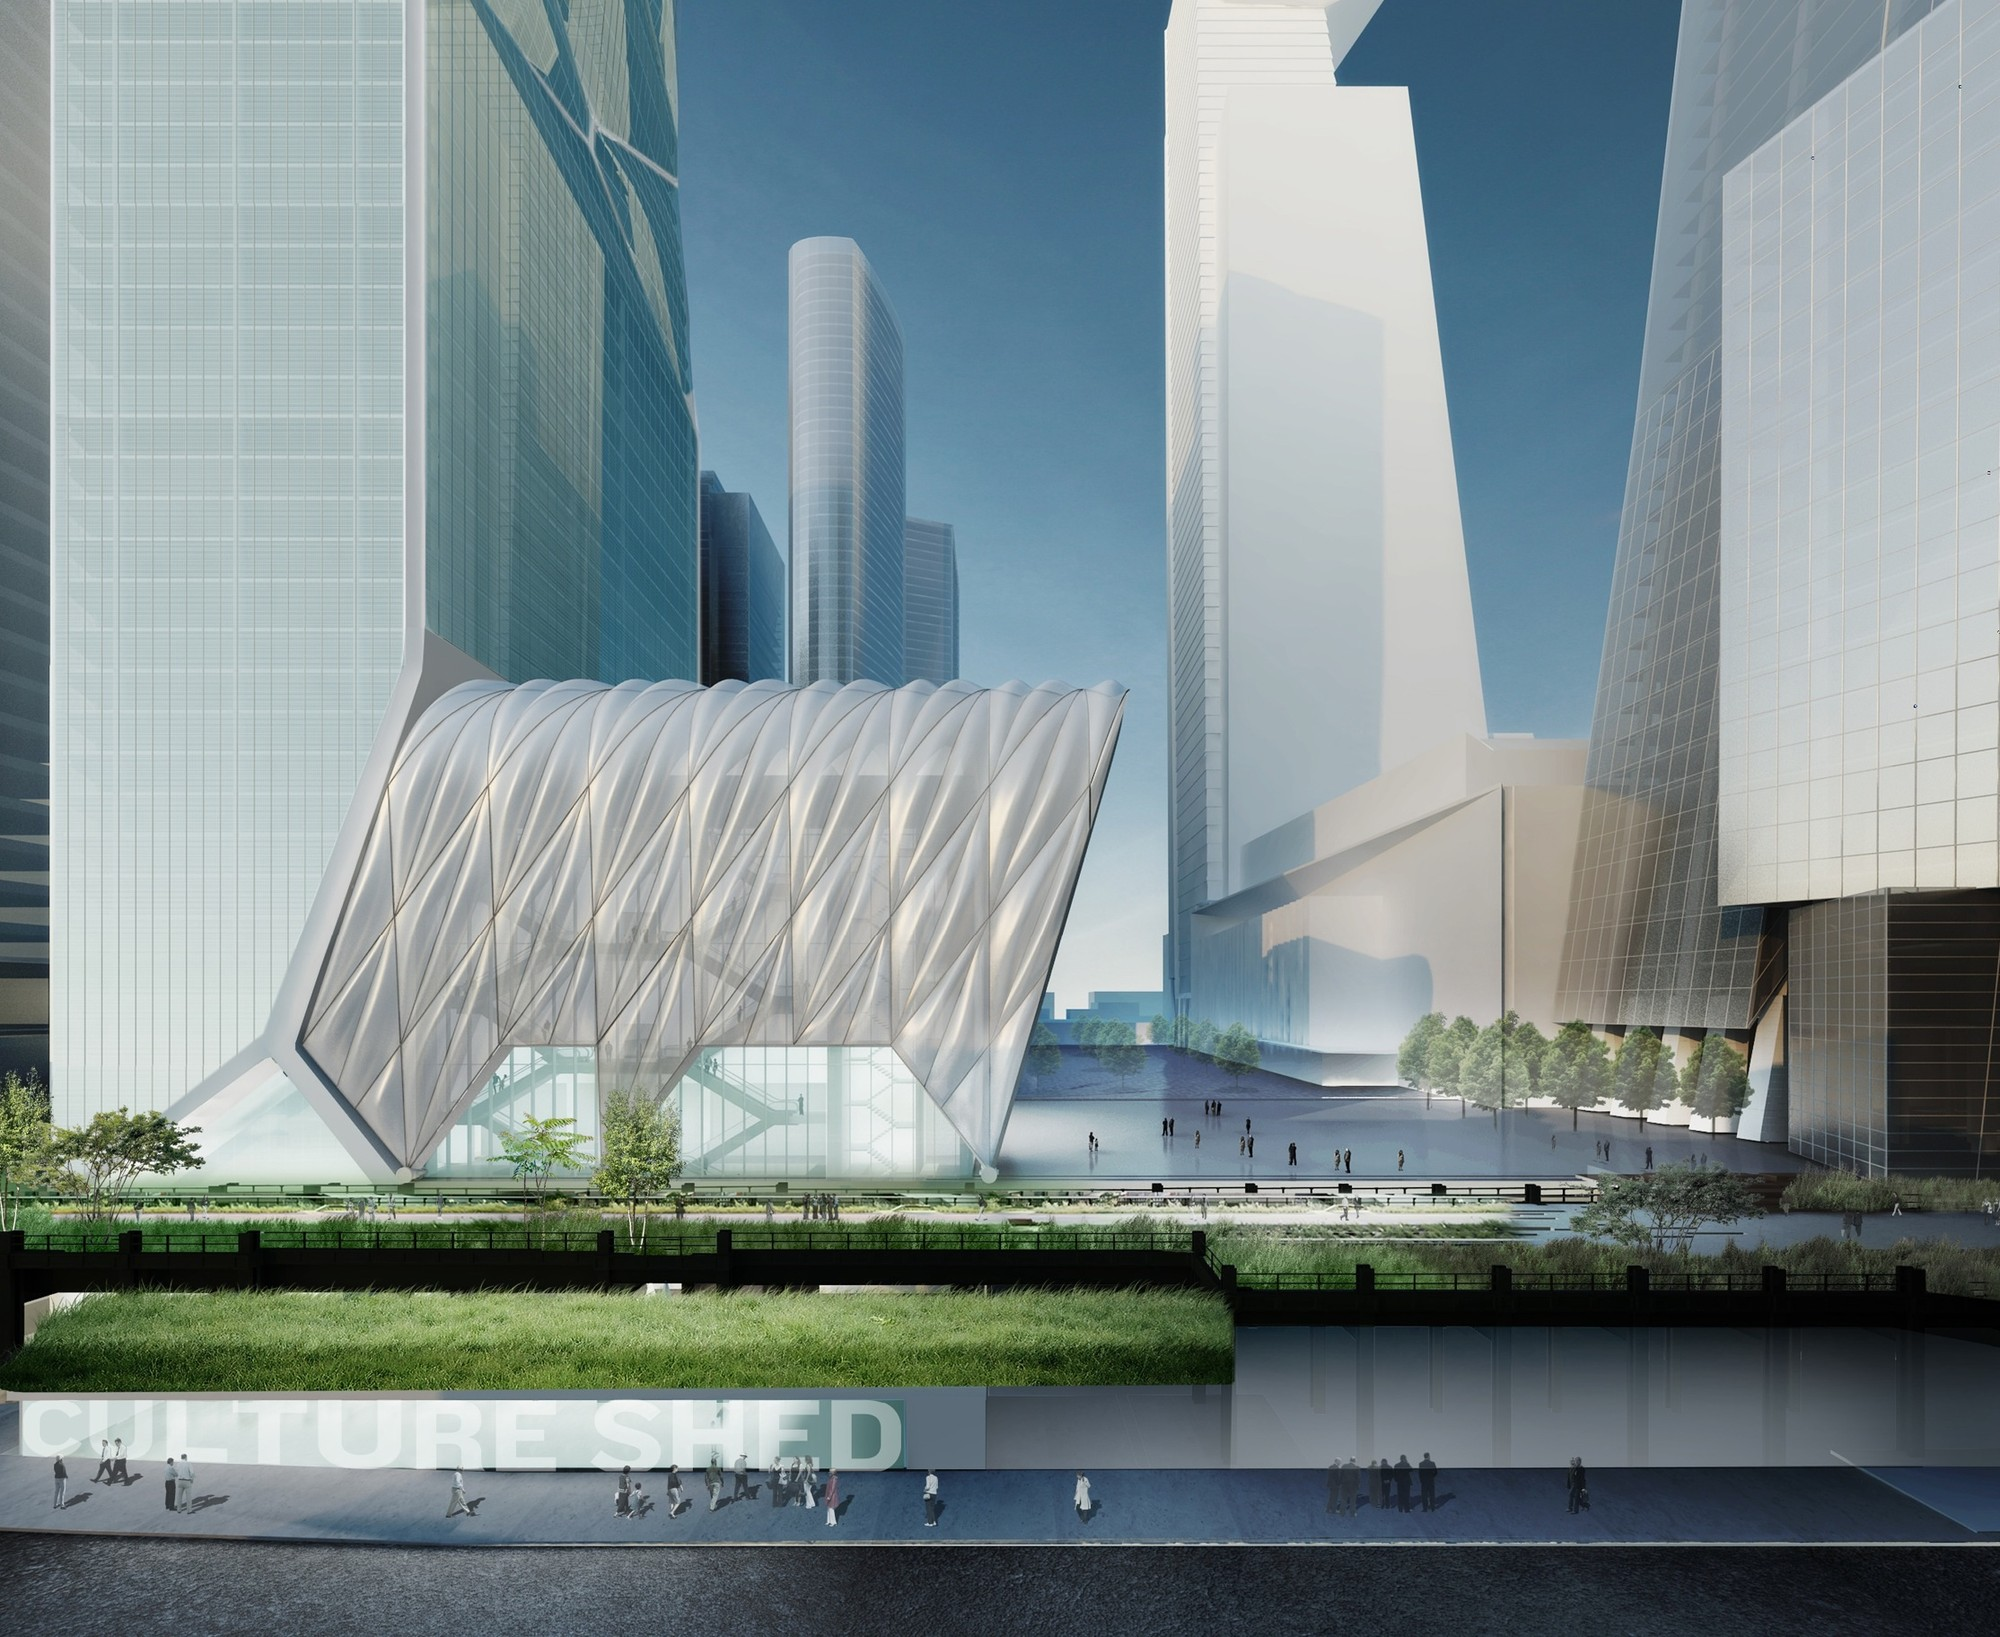 Gallery Of Diller Scofidio Renfro Designs Telescopic Culture Shed For New York 2